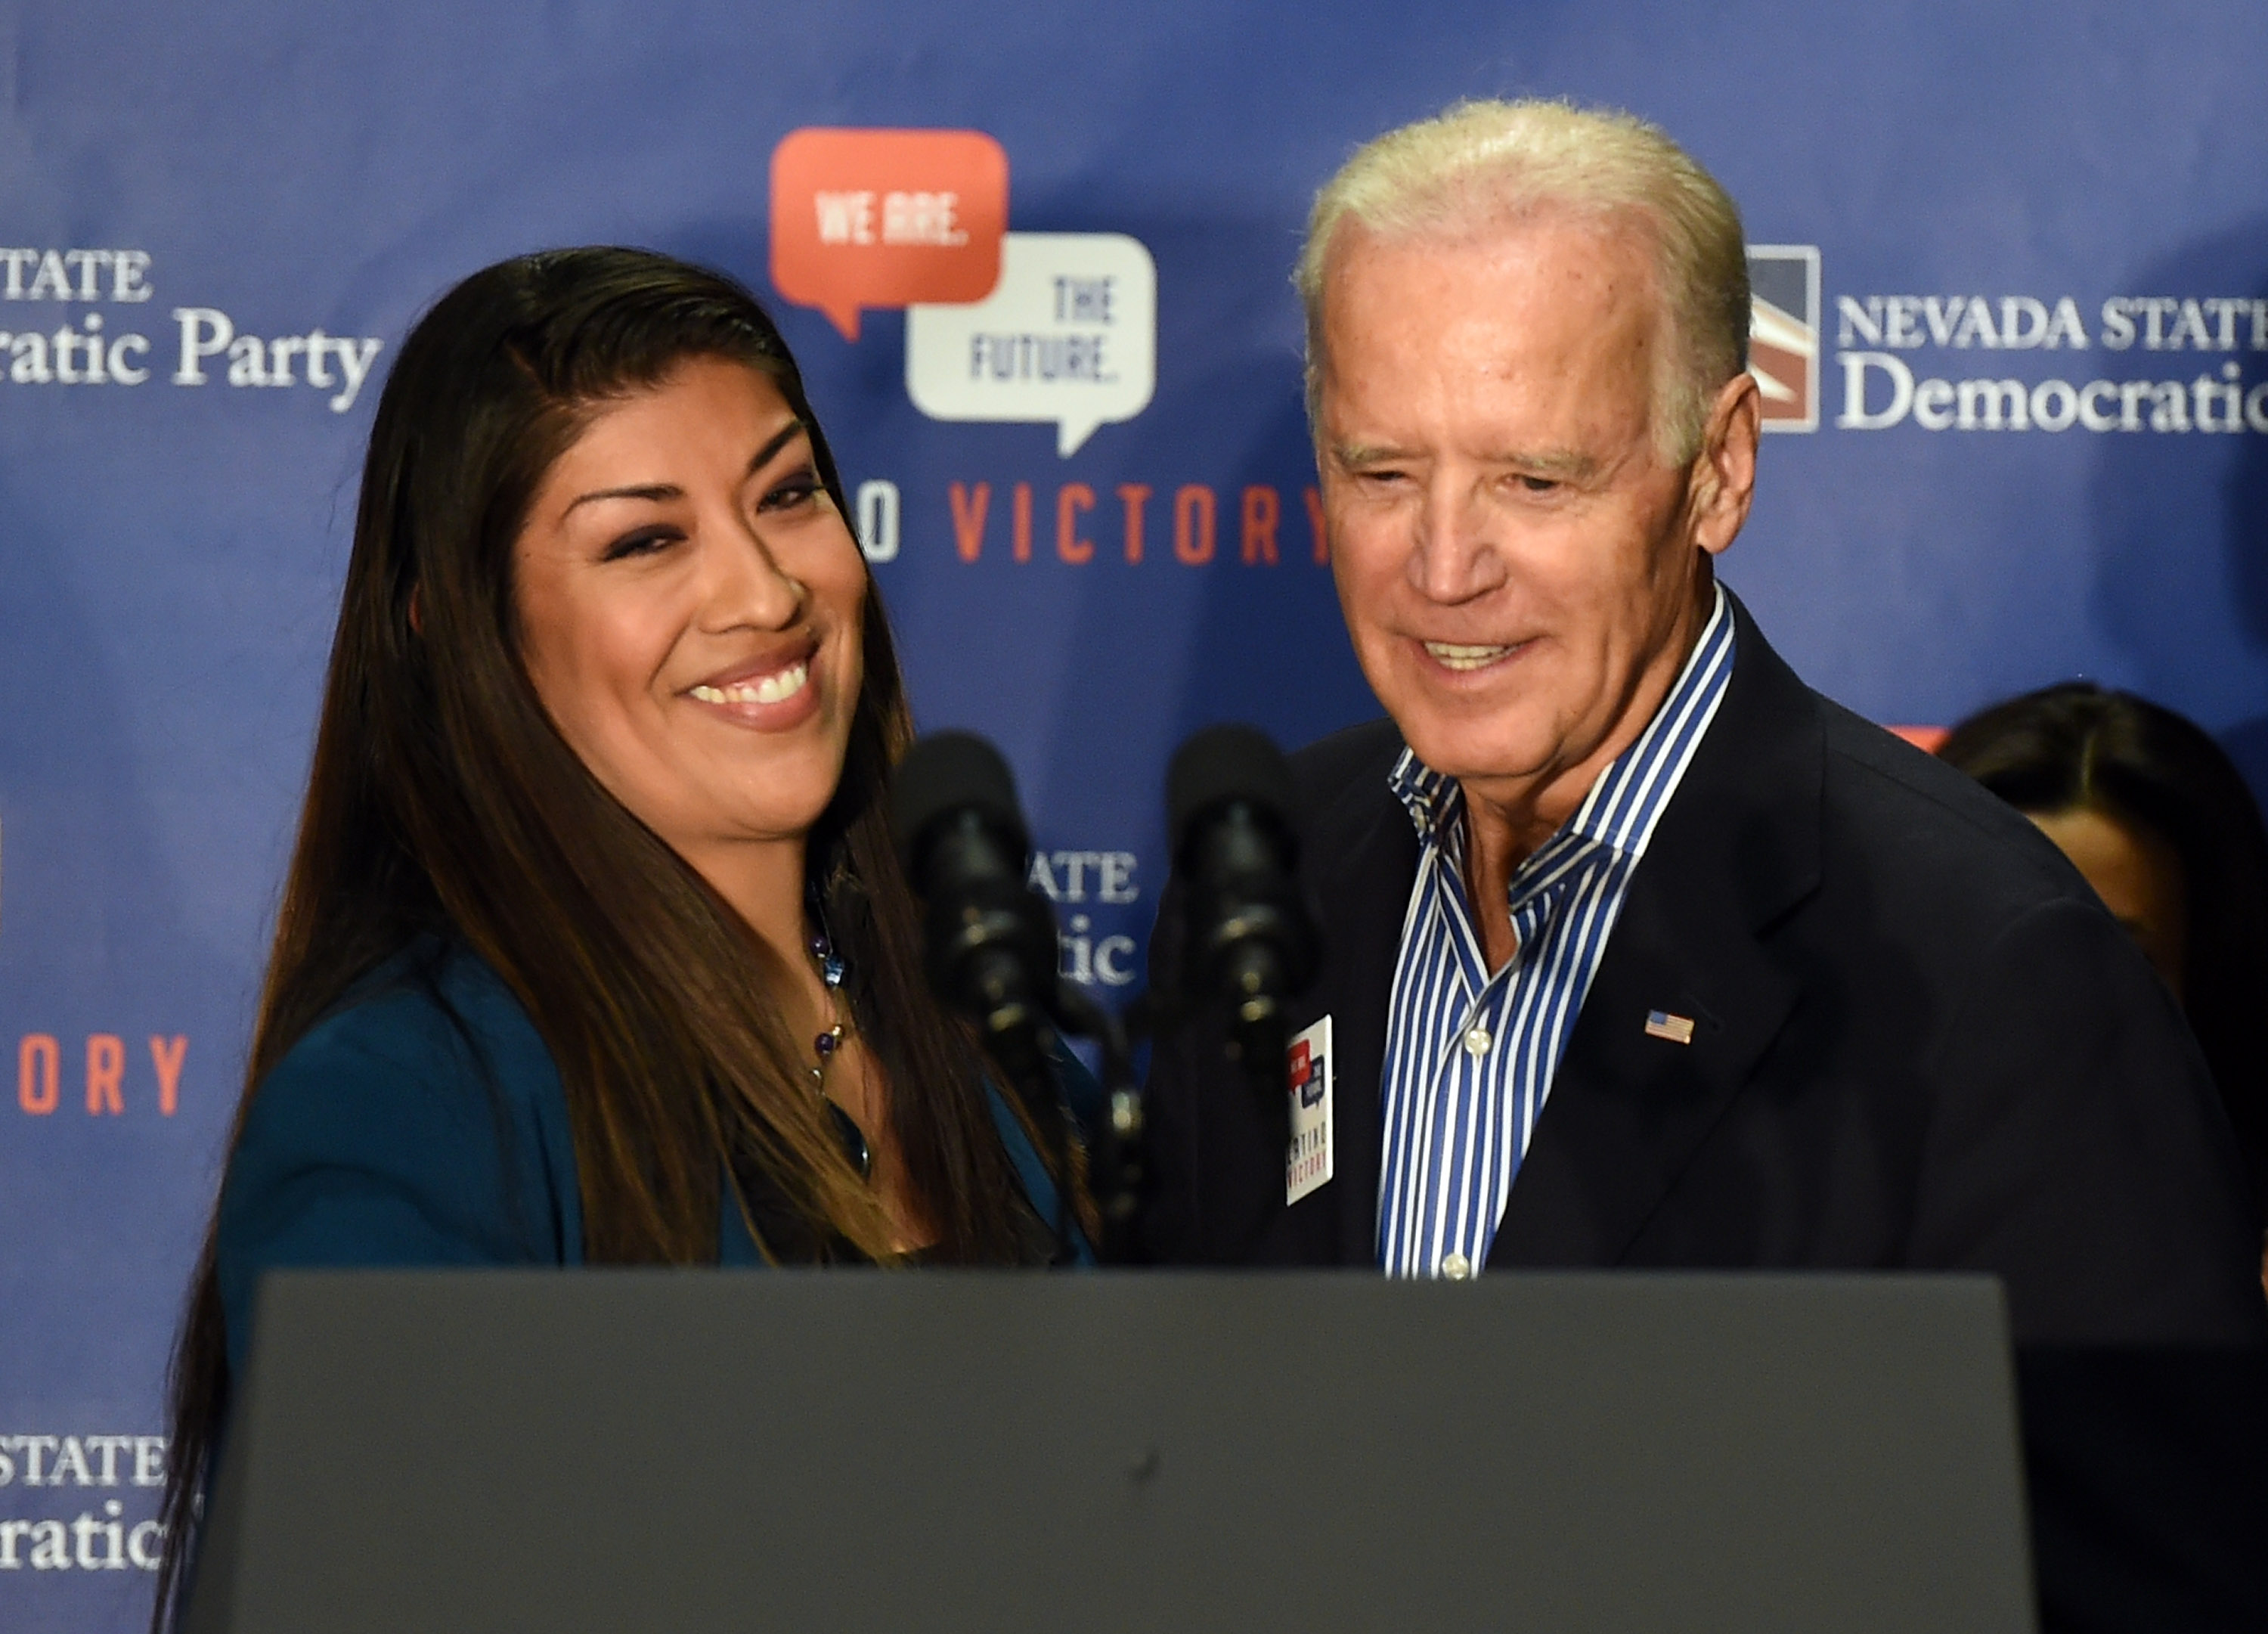 The controversy over Joe Biden's treatment of women, explained